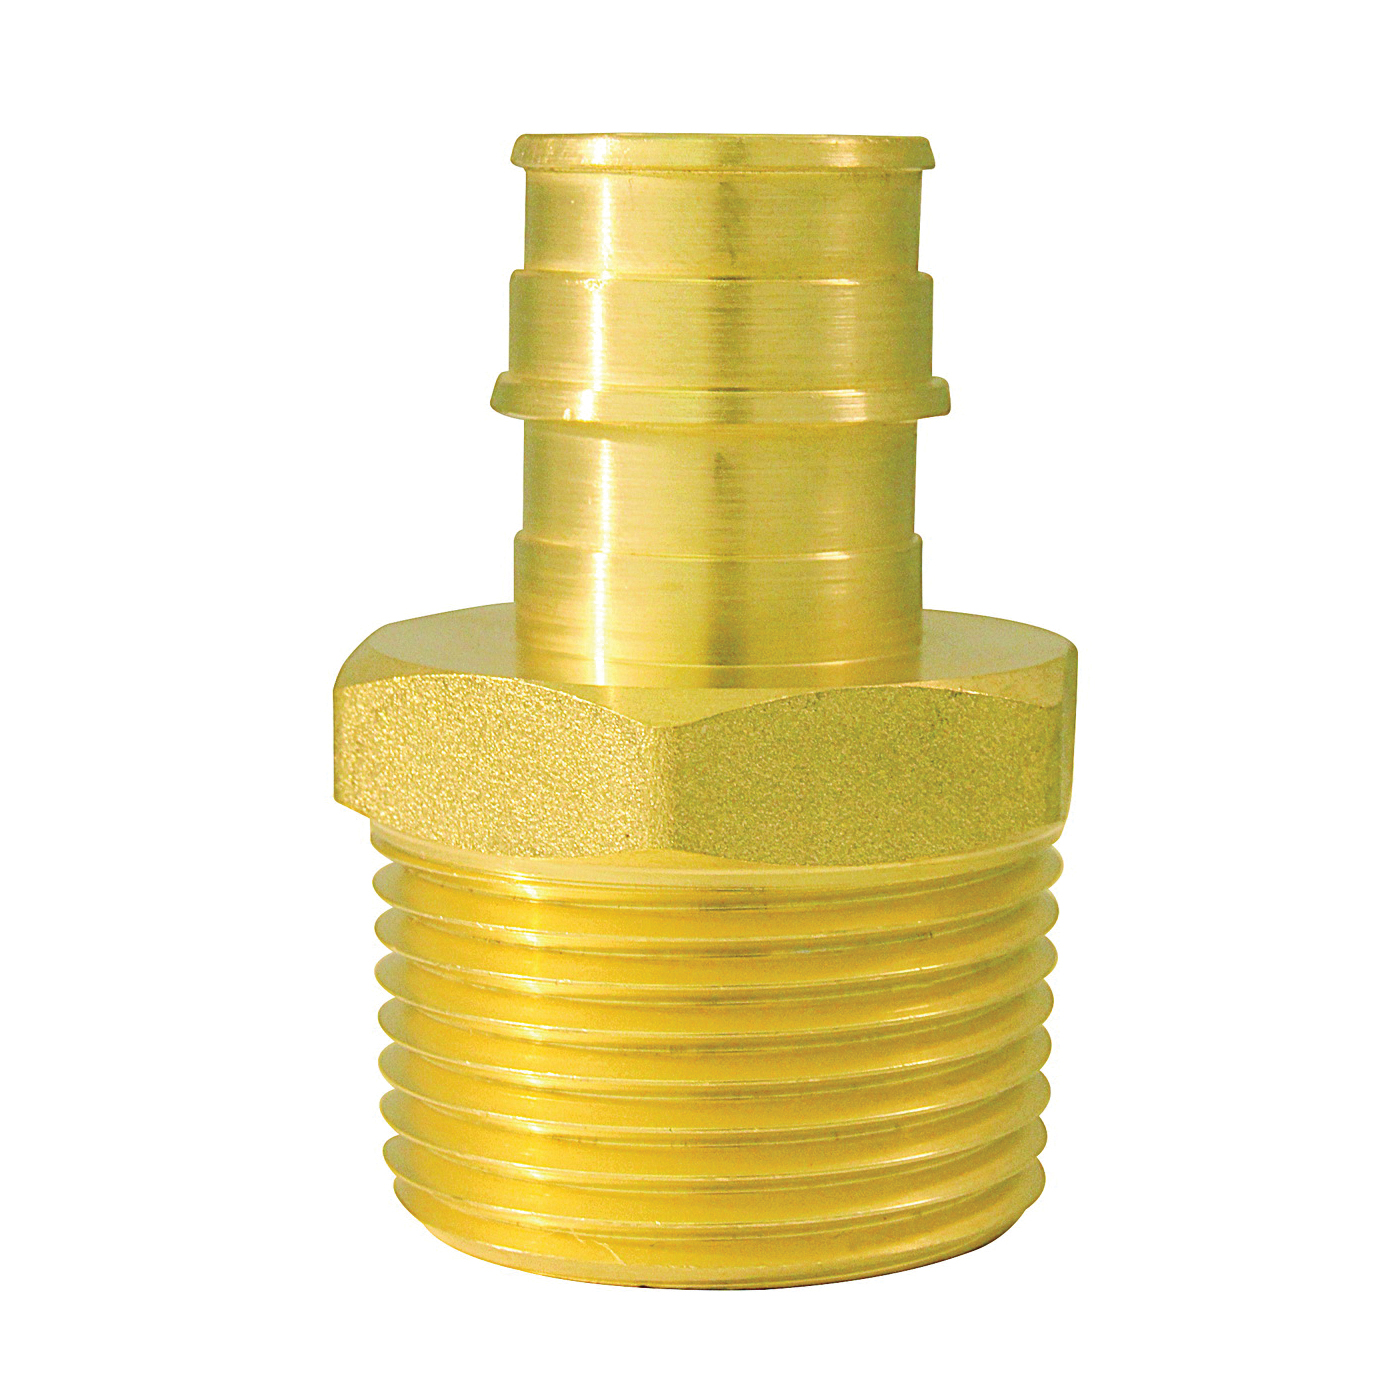 Picture of Apollo ExpansionPEX EPXMA341 Reducing Adapter, 3/4 x 1 in, Barb x MPT, Brass, 200 psi Pressure